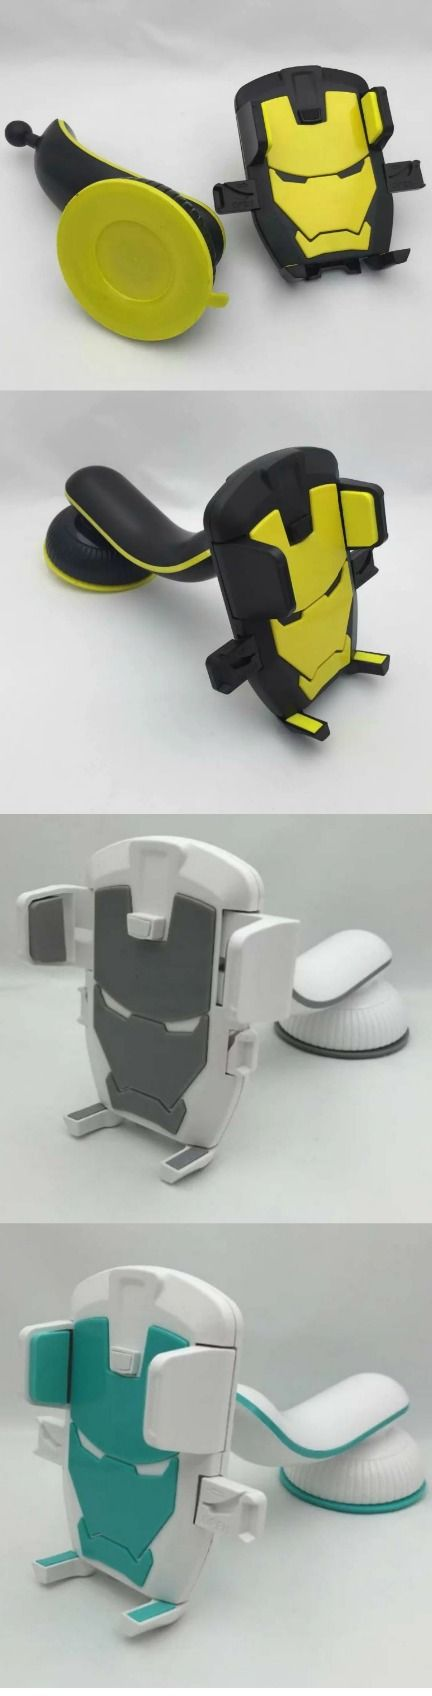 Smartphone Car Mount! Click The Image To Buy It Now or Tag Someone You Want To Buy This For. #transformers